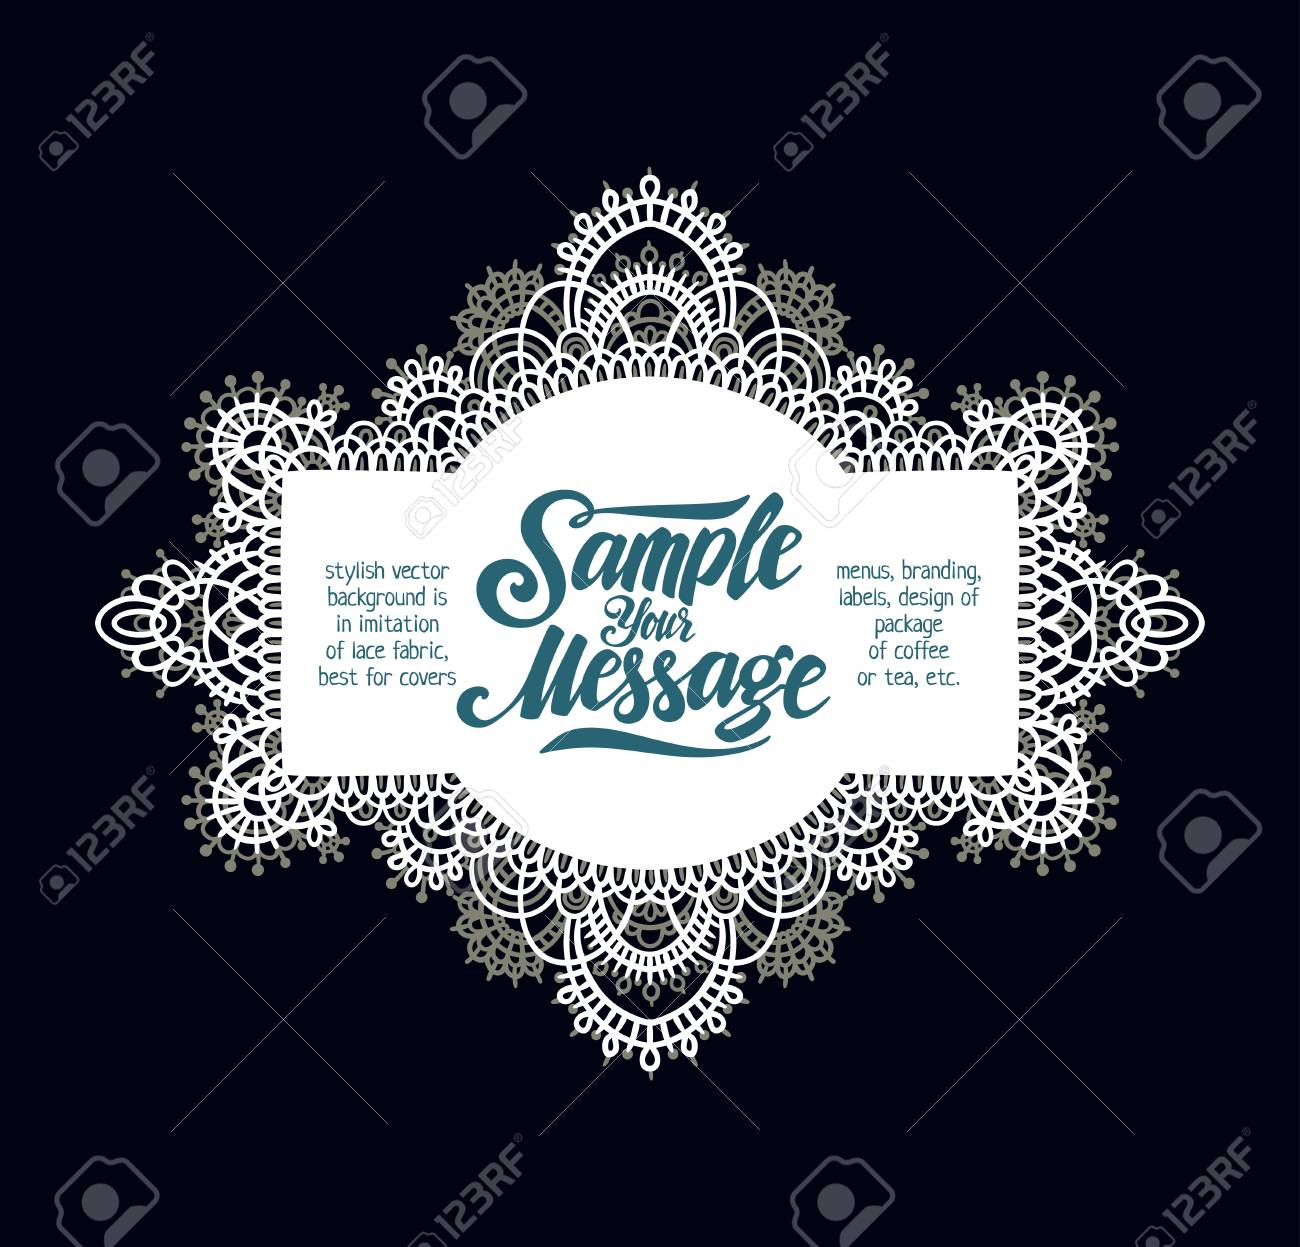 Stylish Vector Background Is In Imitation Of Lace Fabric 4719817f5